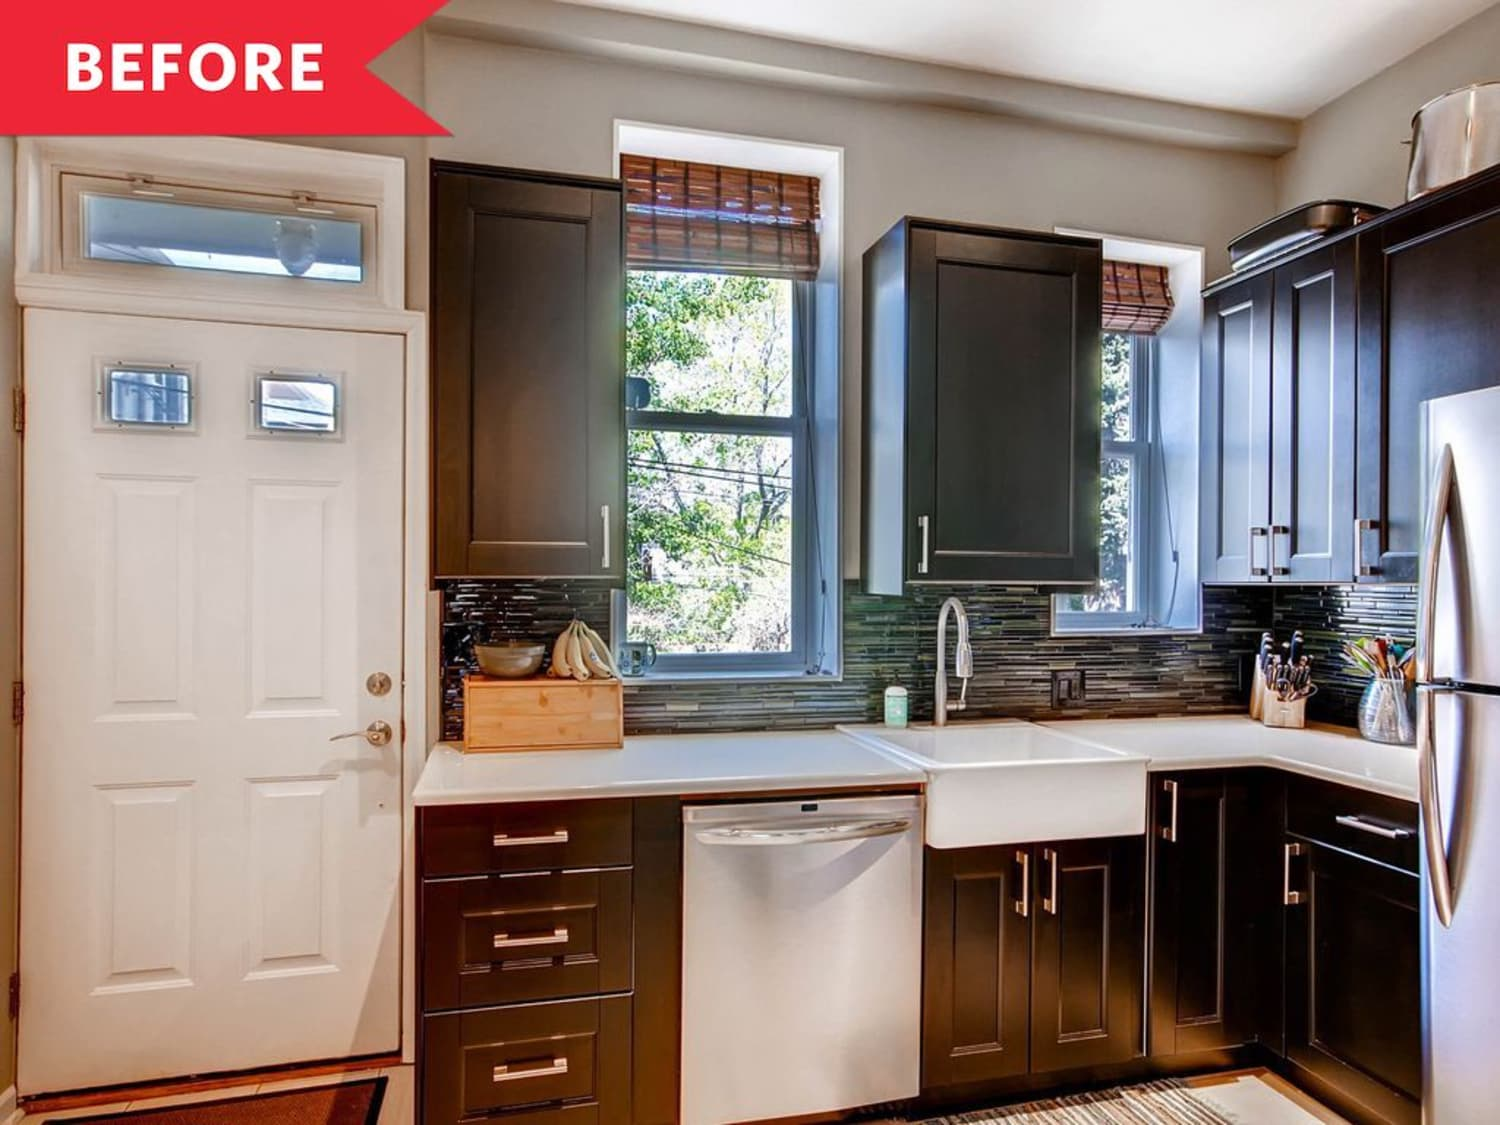 Before & After: This Small, Builder-Grade Kitchen Gets a Major, IKEA-Filled Upgrade